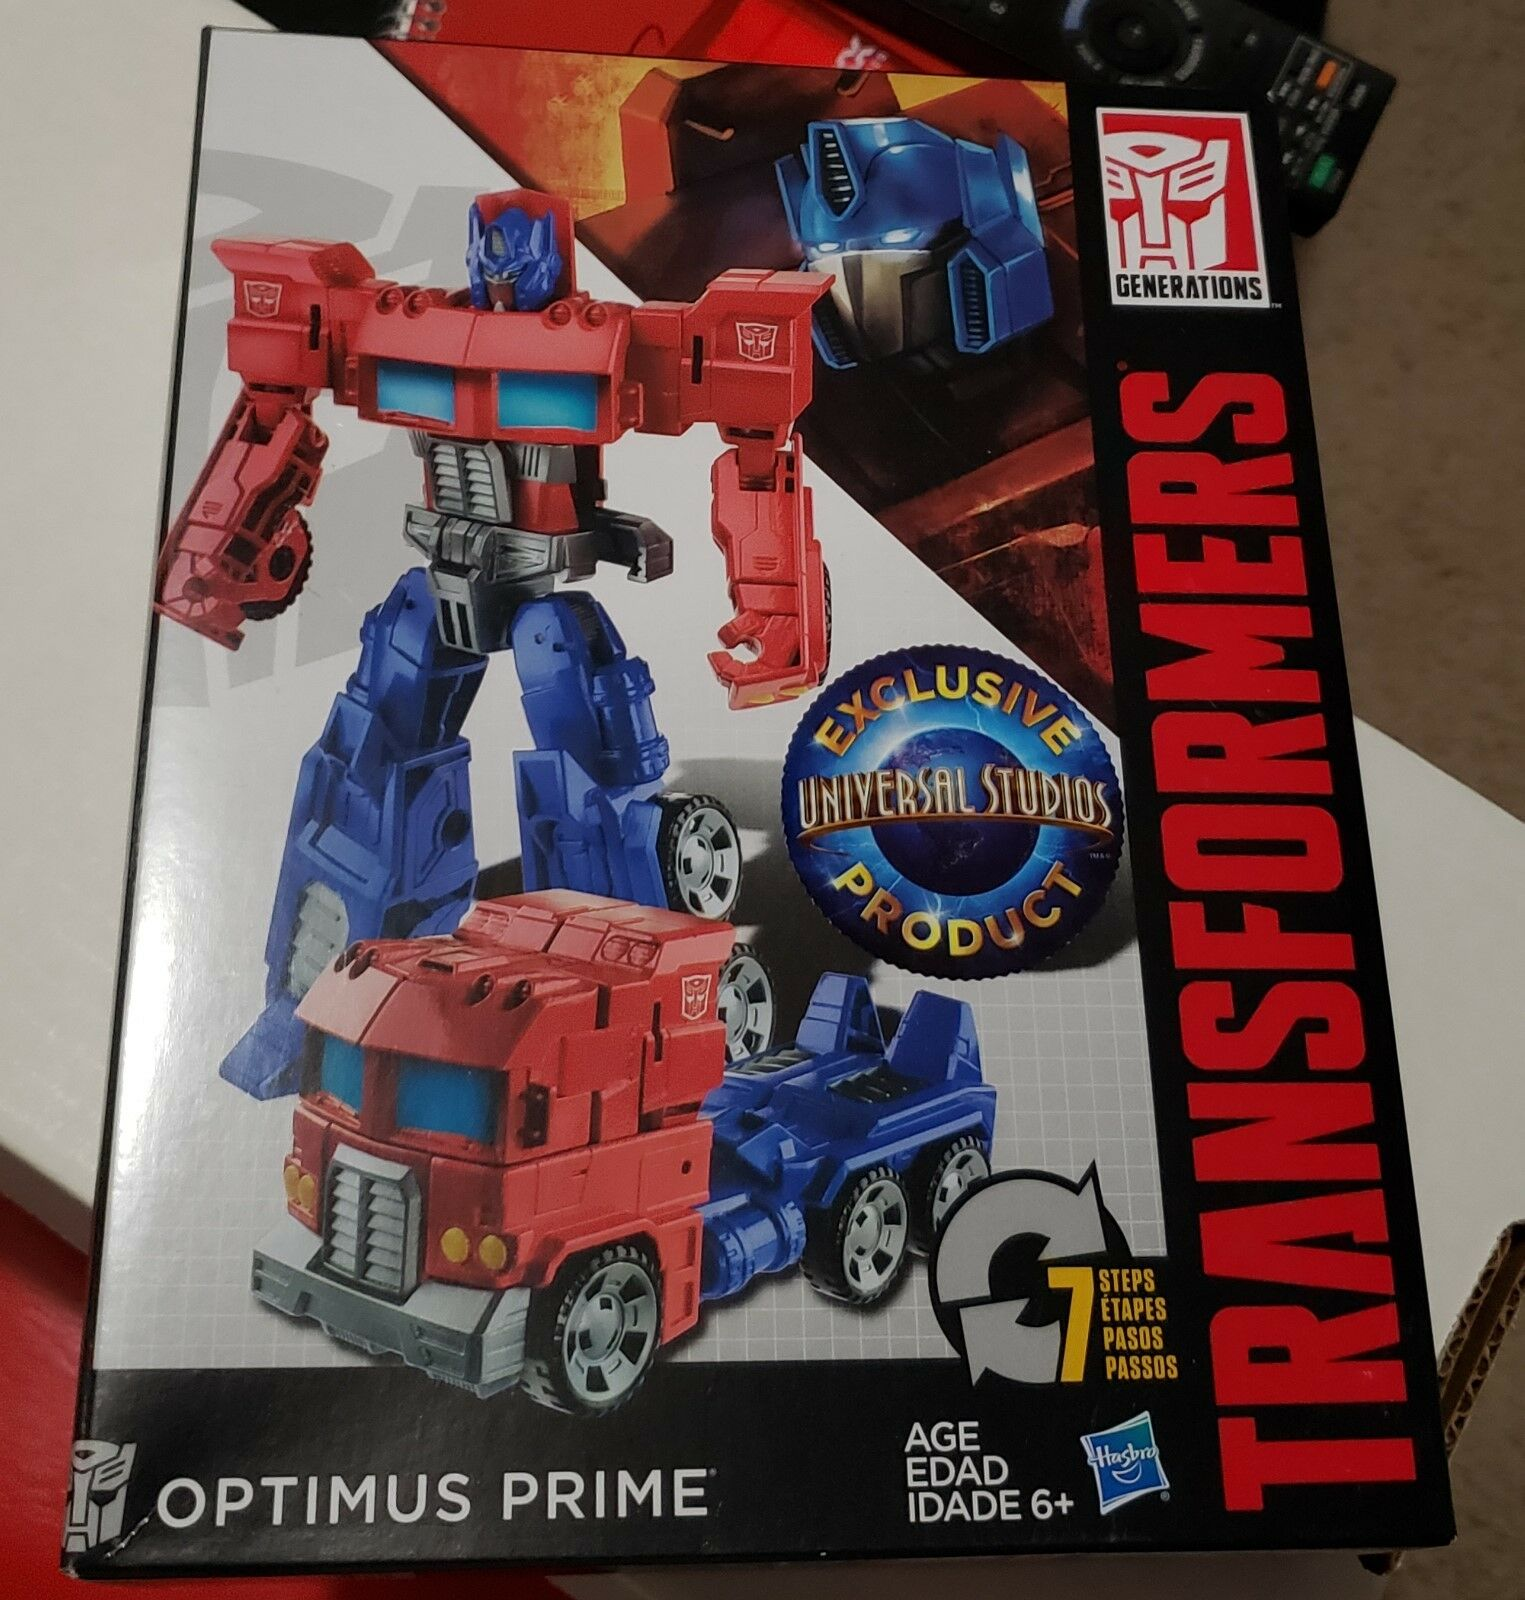 Optimus Prime Transformers Generations Universal Studios Exclusive Figure